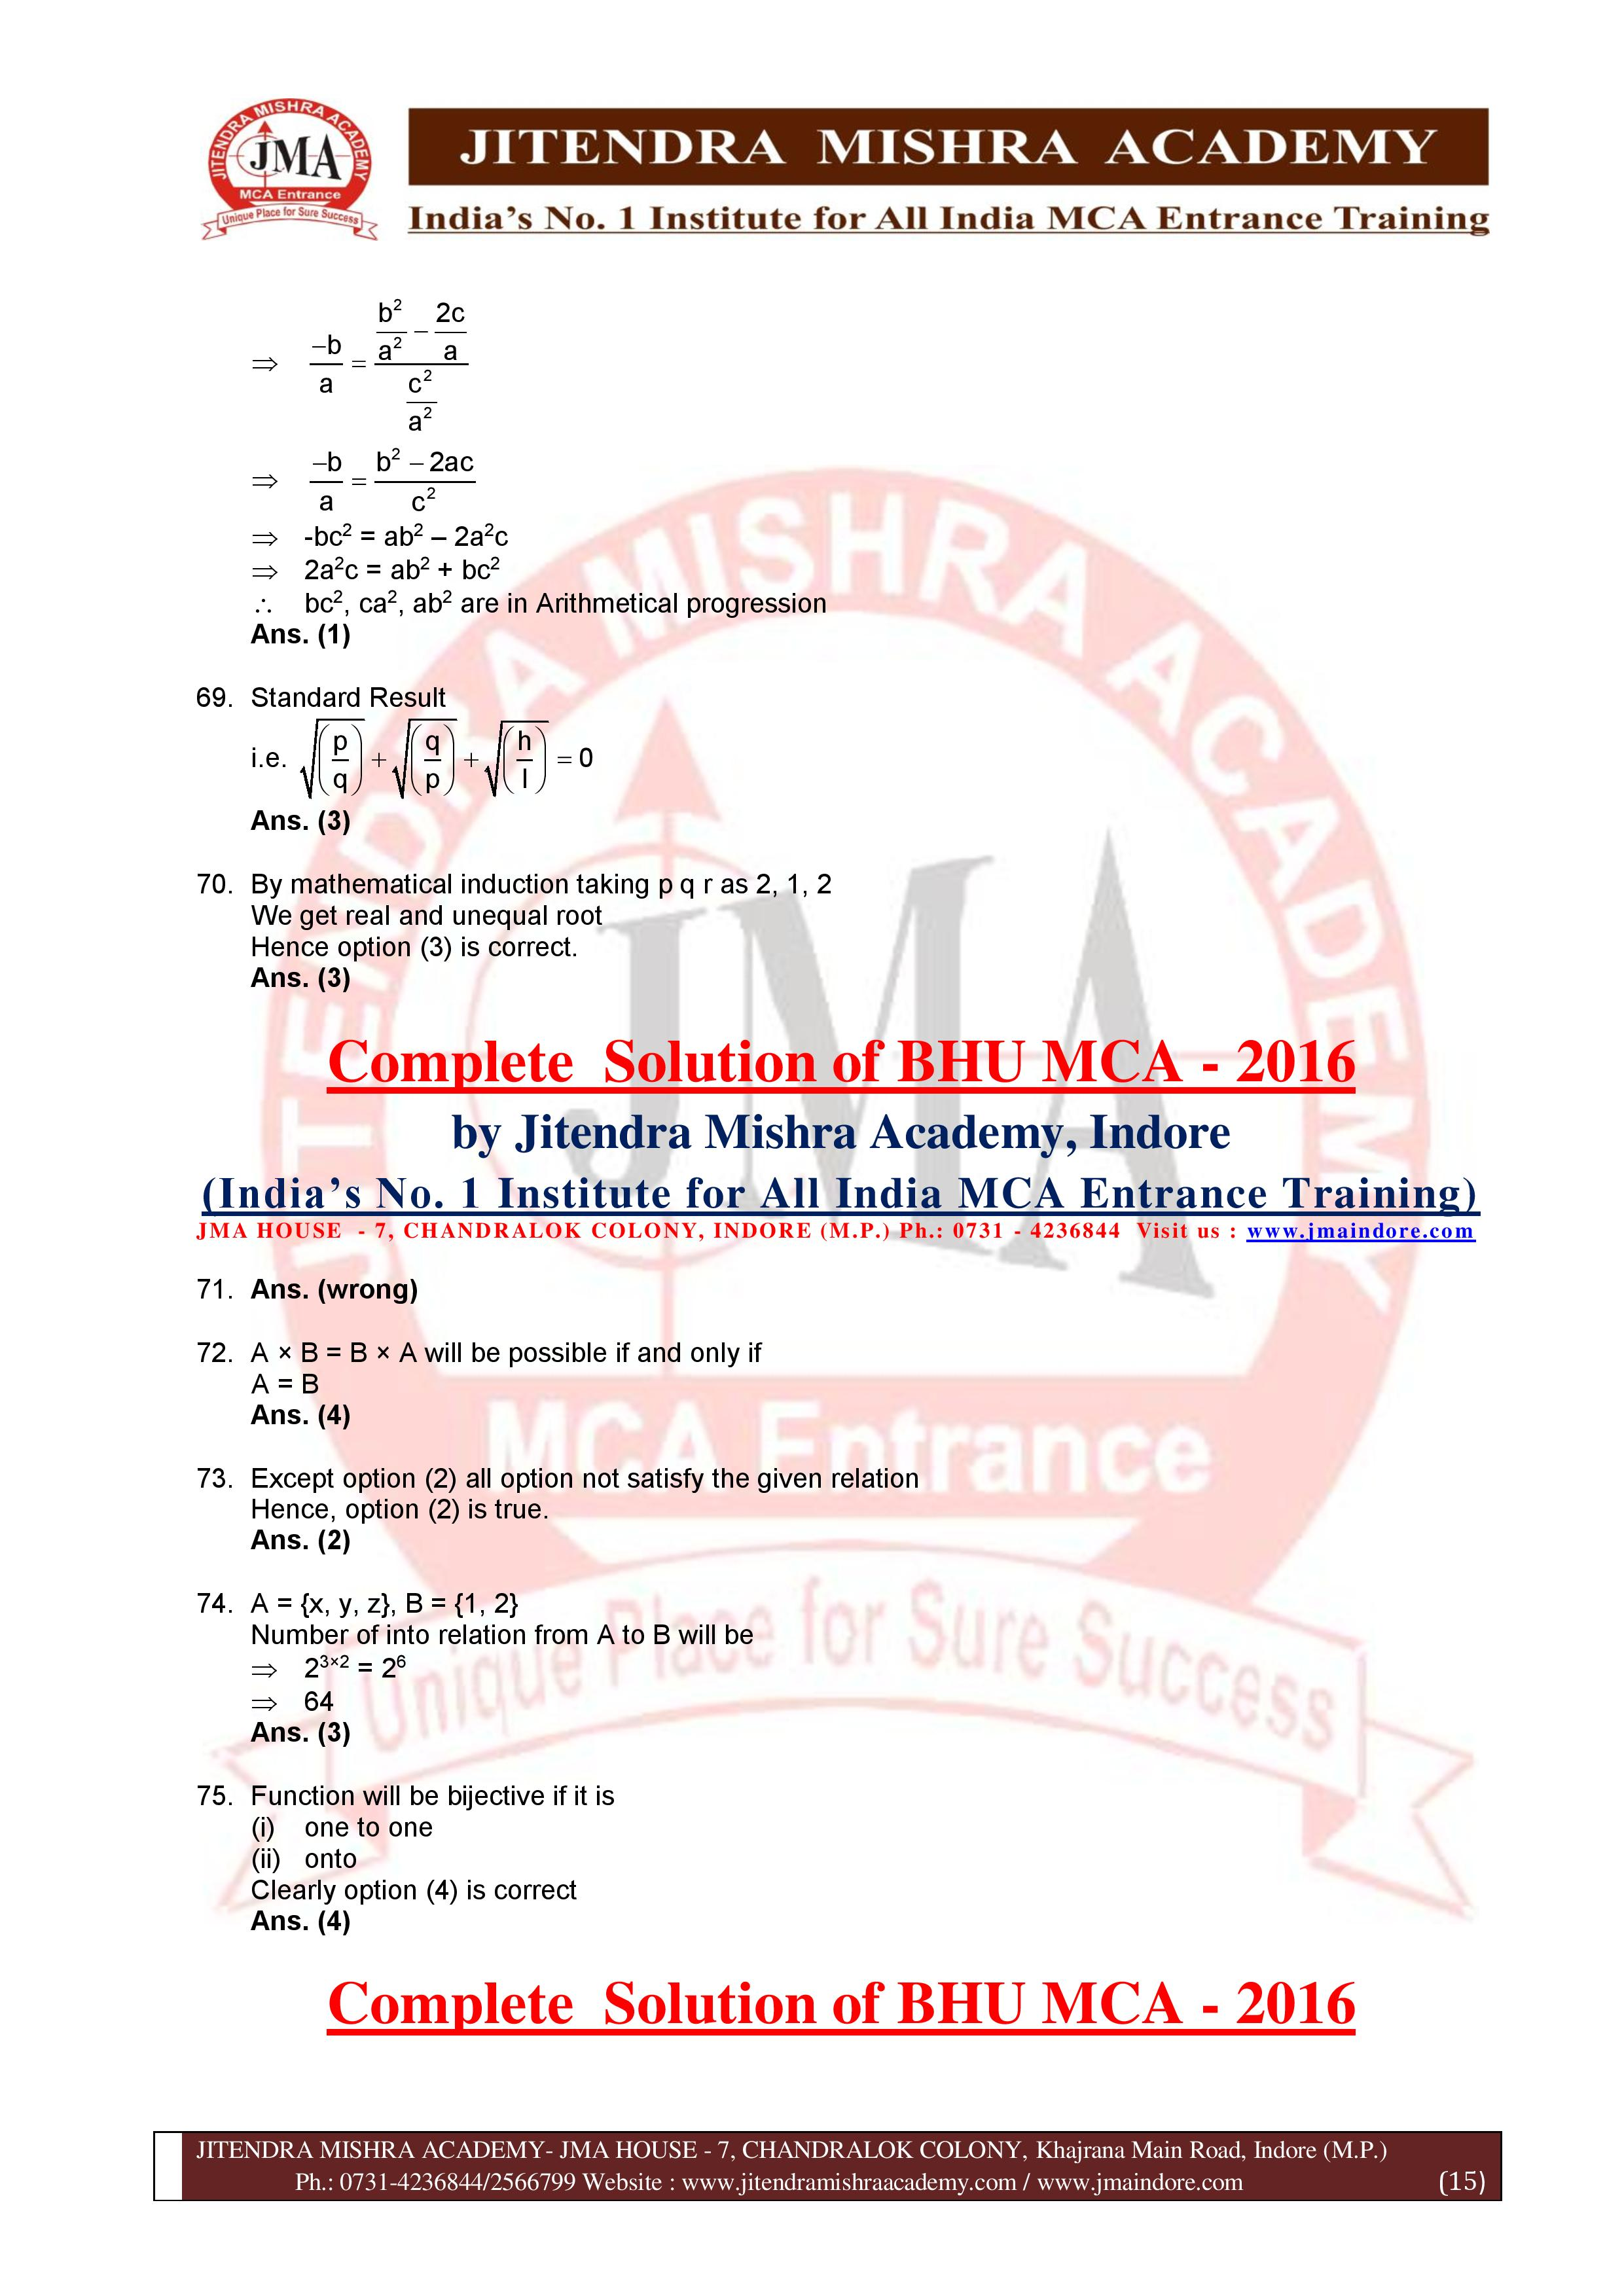 BHU 2016 SOLUTION (SET - 1)-page-015